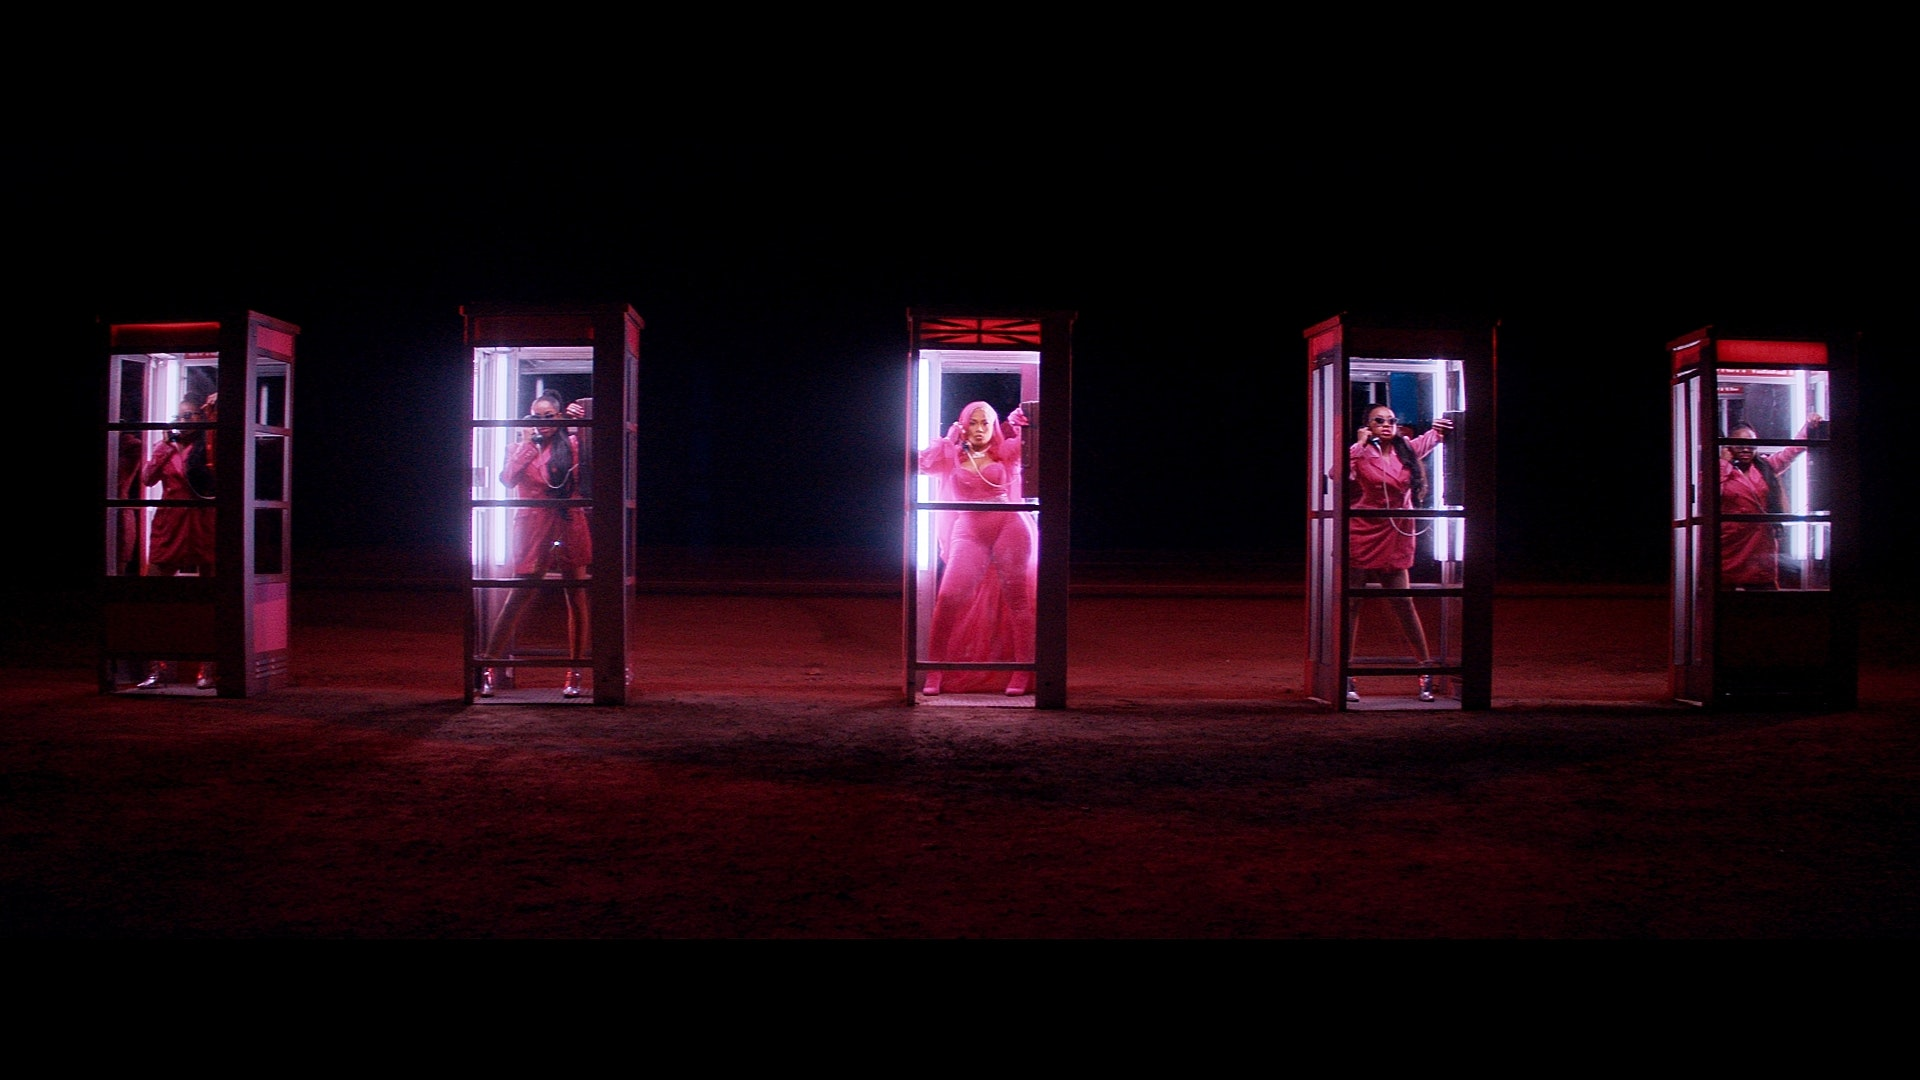 Stefflon Don feat. Lil Baby - Phone Down